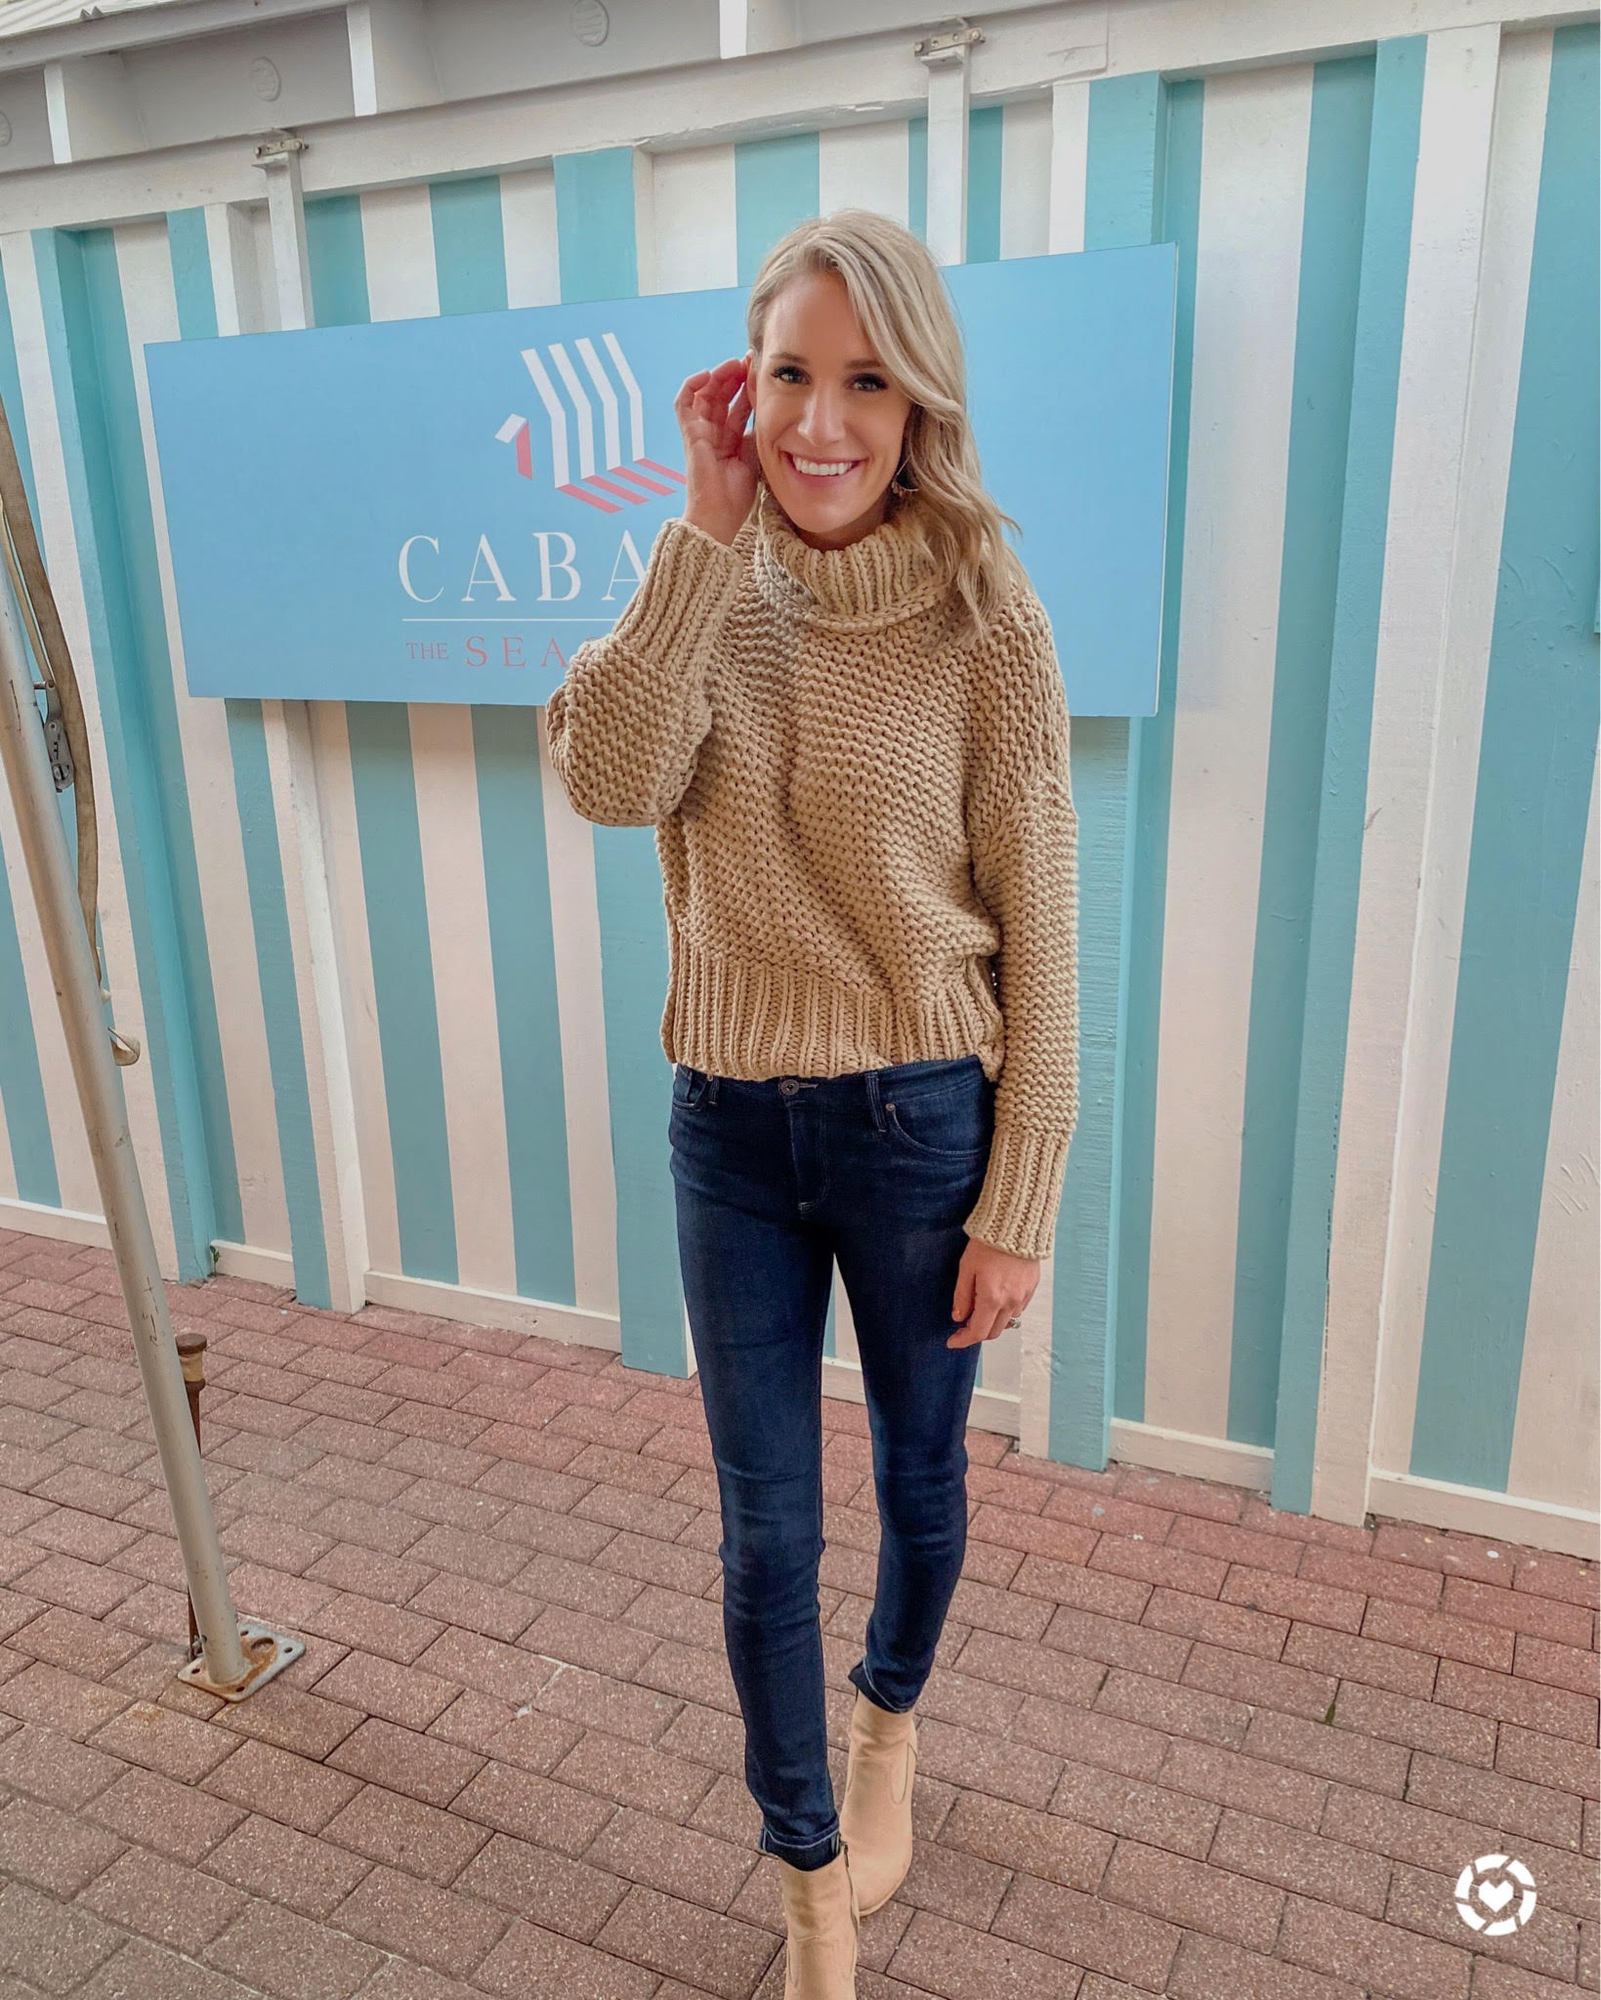 women in winter sweater | Winter Sweaters by popular Michigan fashion blog, The House of Navy: image of a woman wearing a tan cable knit sweater, dark denim jeans, and tan suede ankle boots.